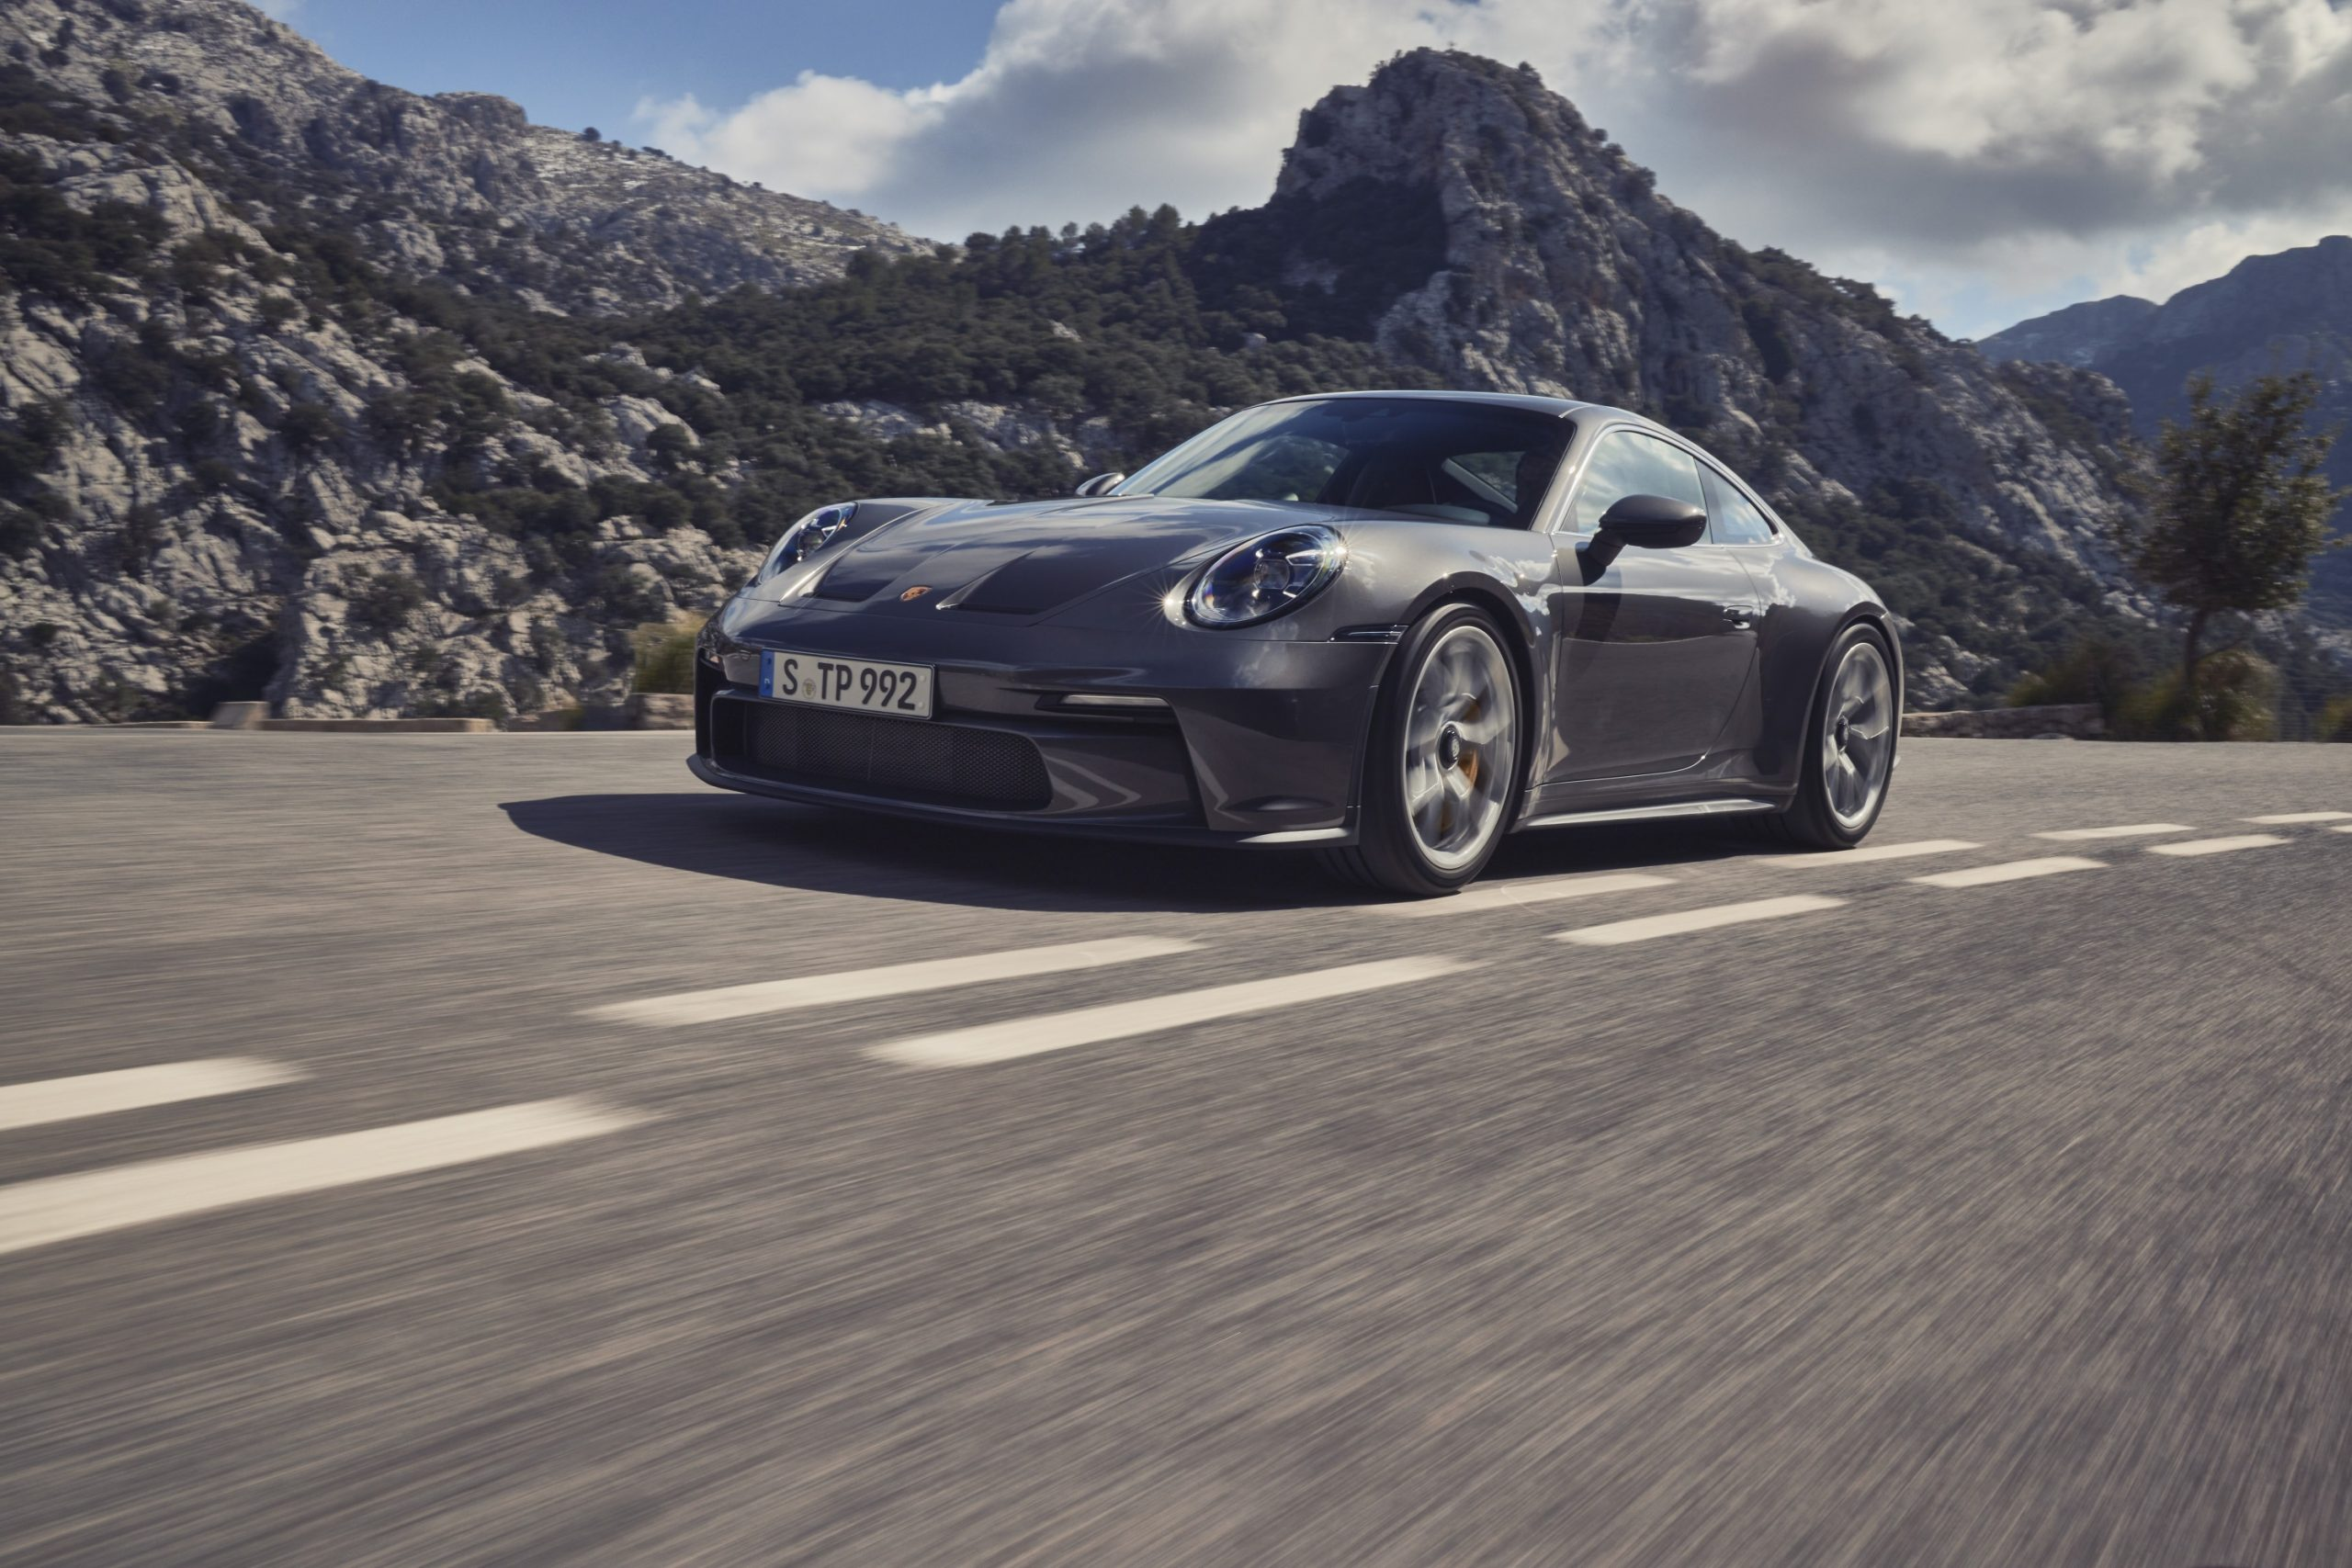 A grey 2022 Porsche 911 GT3 in Touring specification with no wing, shot from the front 3/4 angle on a canyon road